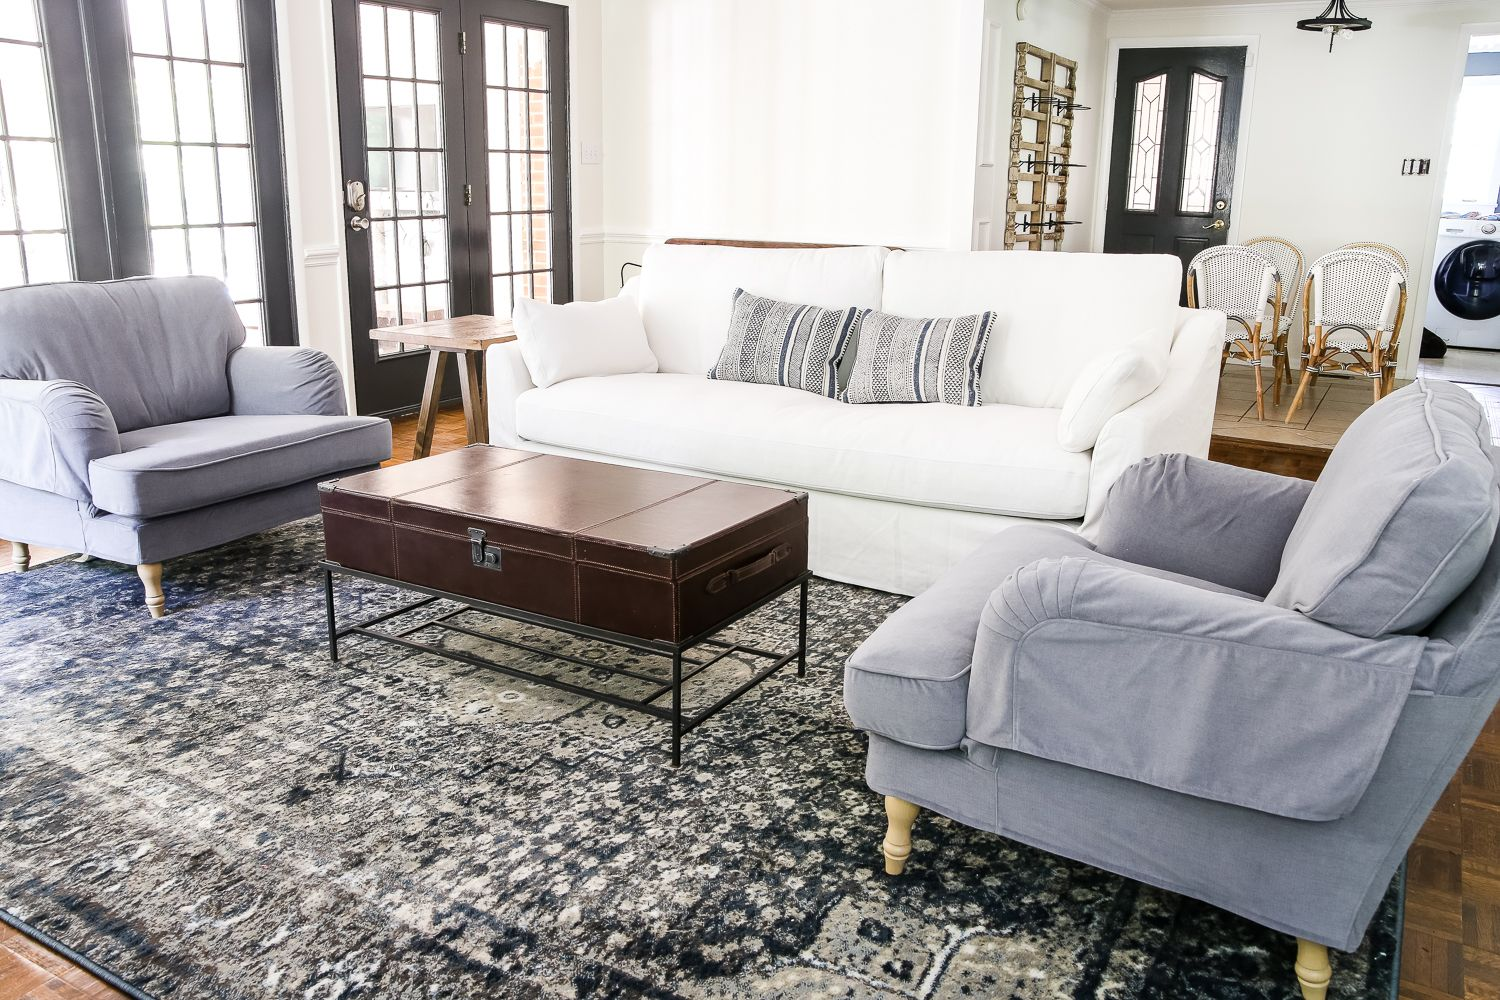 I air dry our slipcover on our breakfast nook chairs and our cushion cover. IKEA's New Sofa and Chairs and How to Keep Them Clean ...